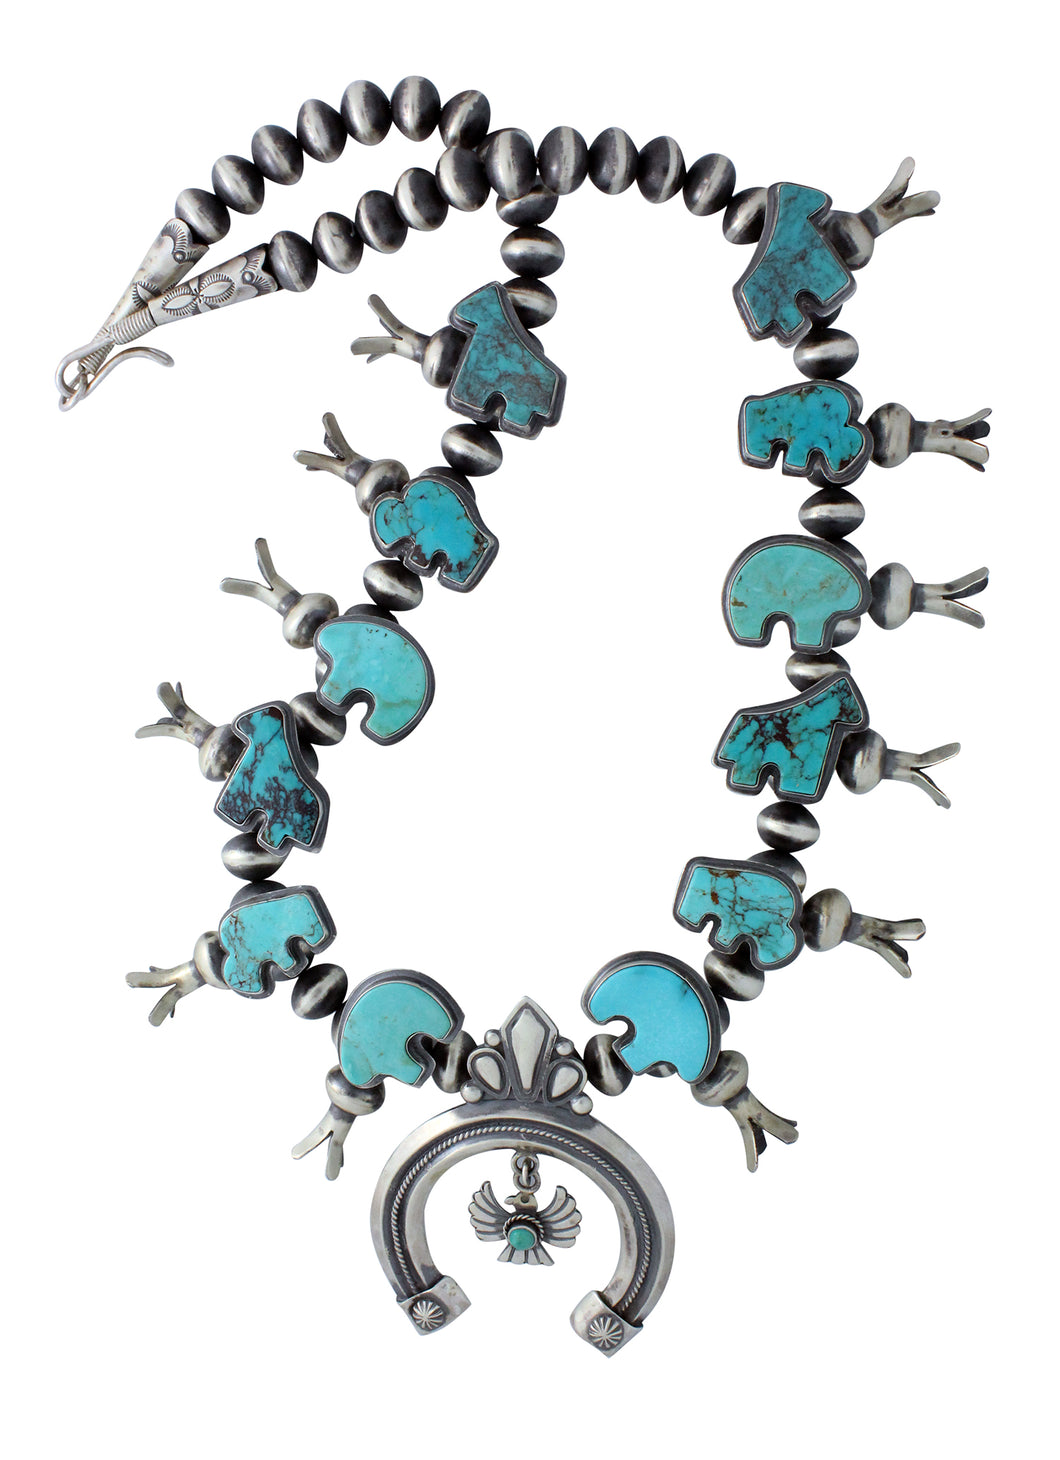 Delayne Reeves, Necklace, Spirit Animals, Silver Beads, Navajo Handmade, 27.5